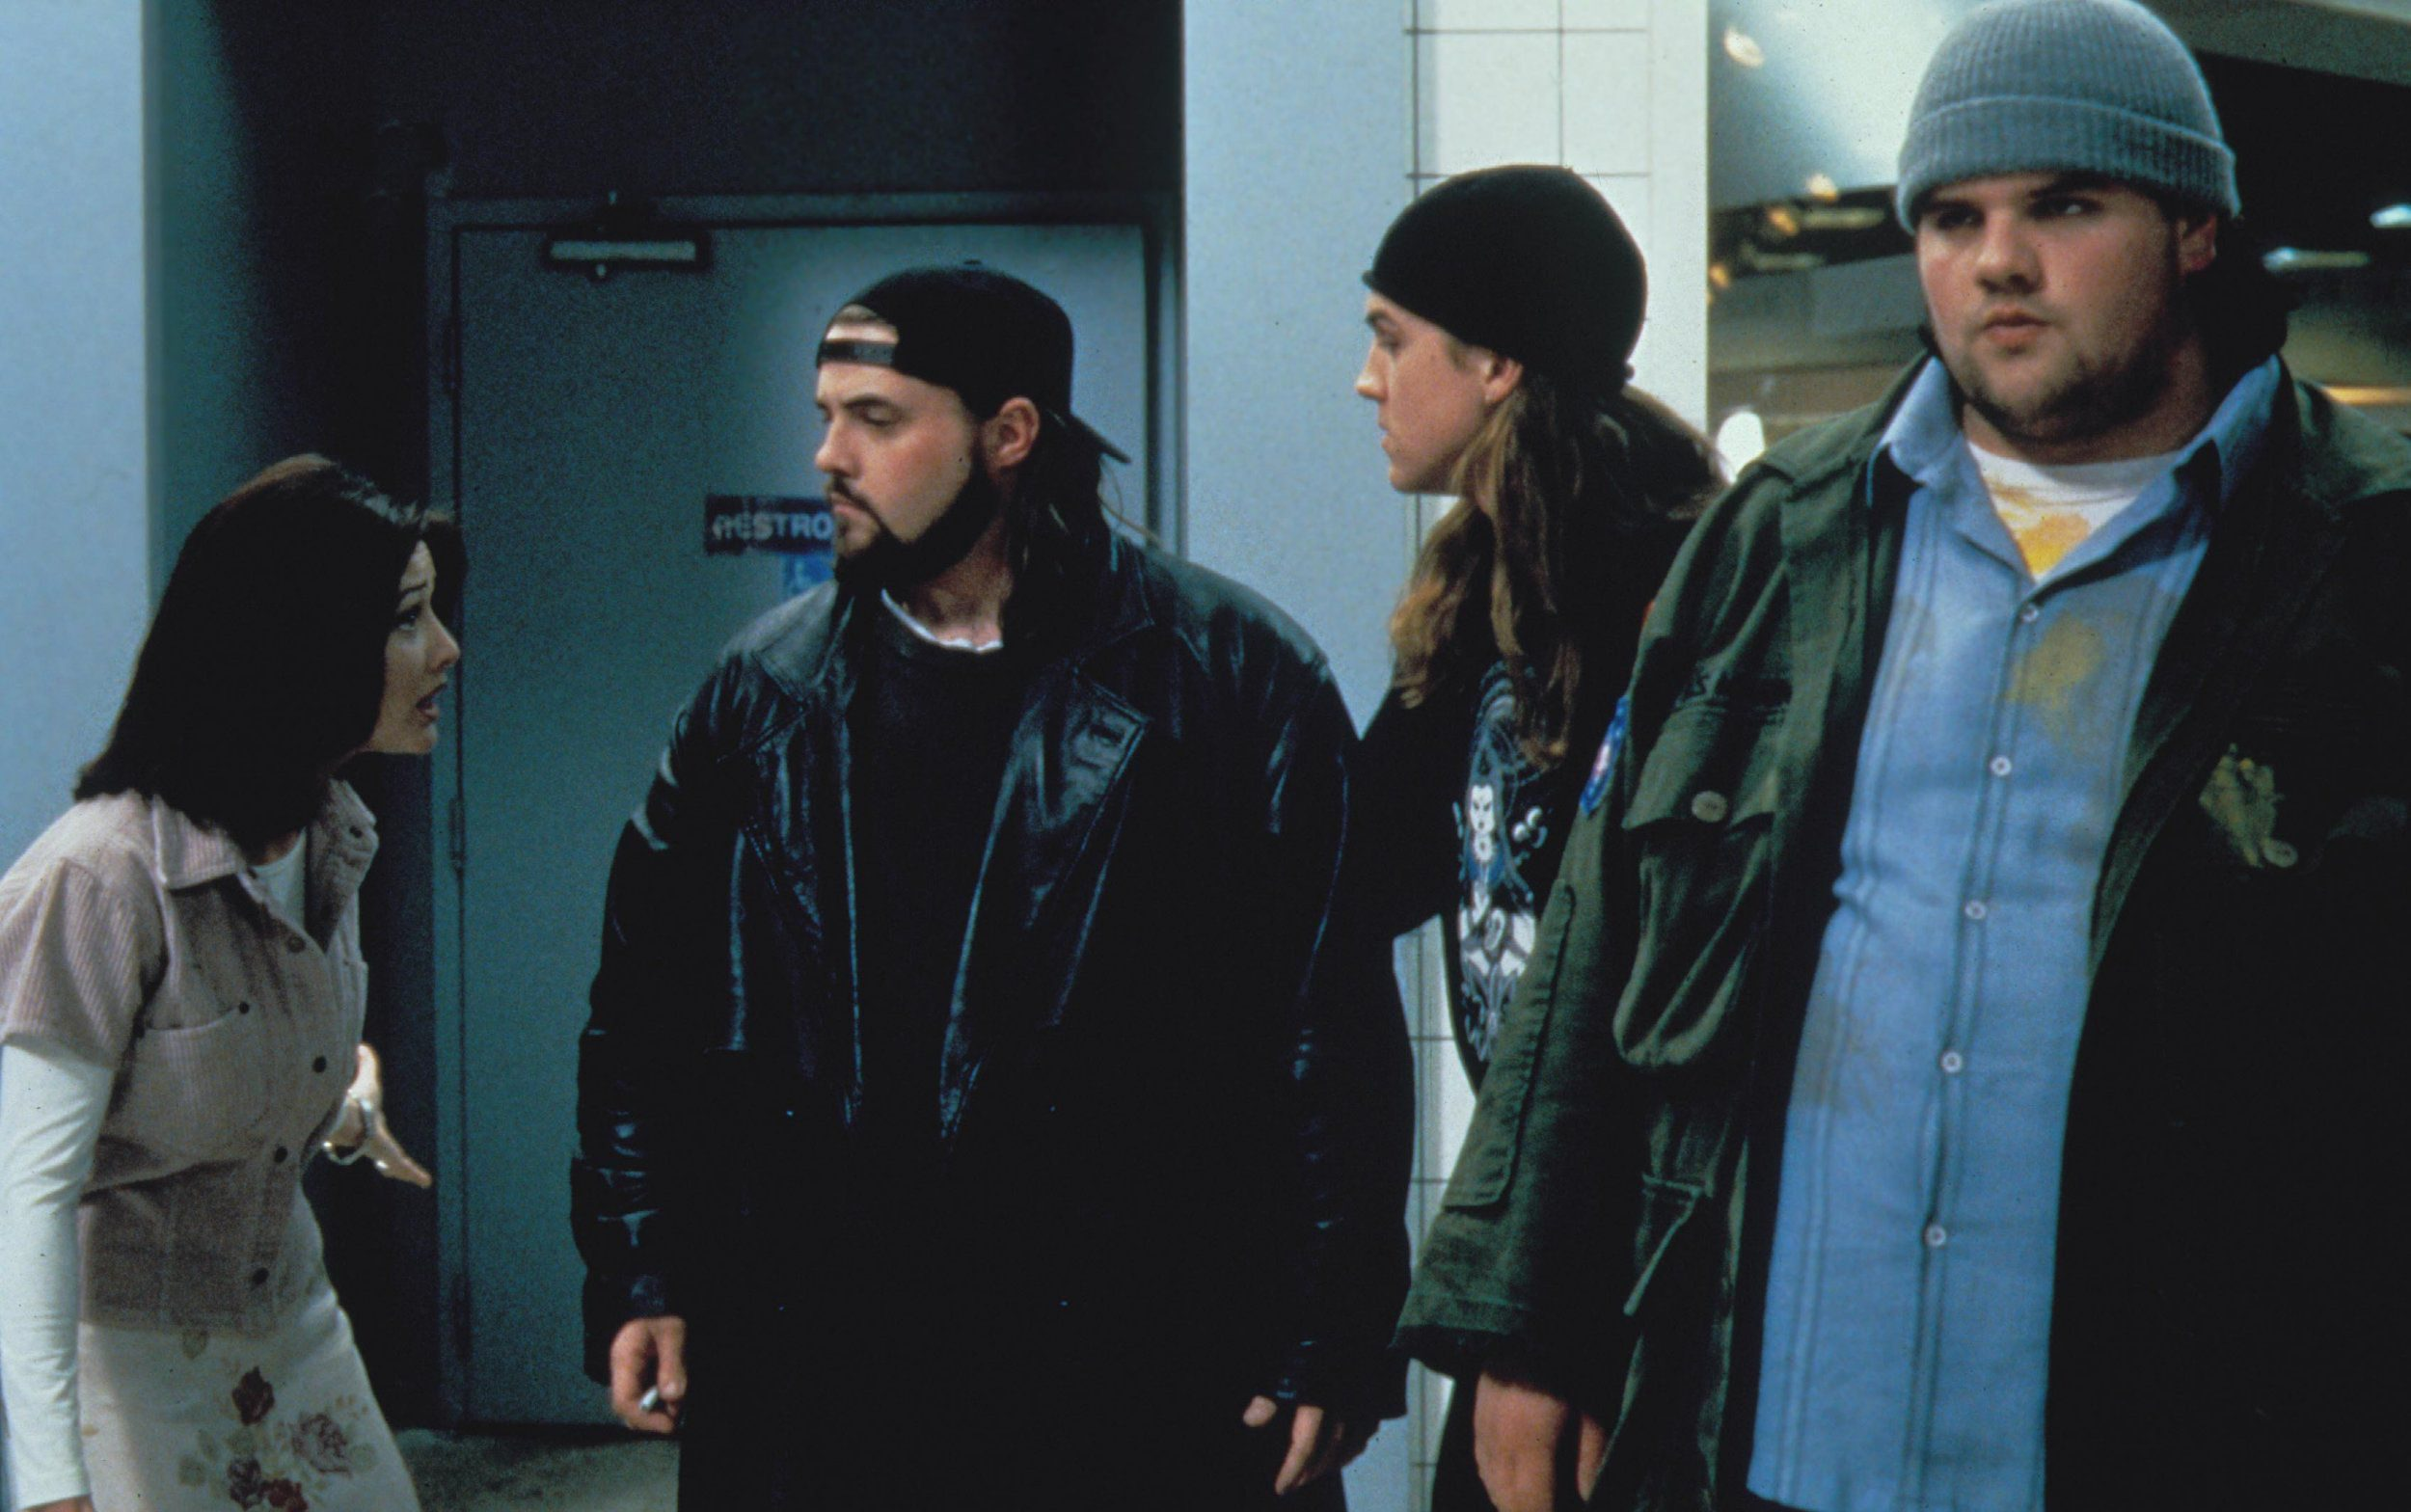 Kevin Smith's 90s movie Mallrats is being made into a TV series